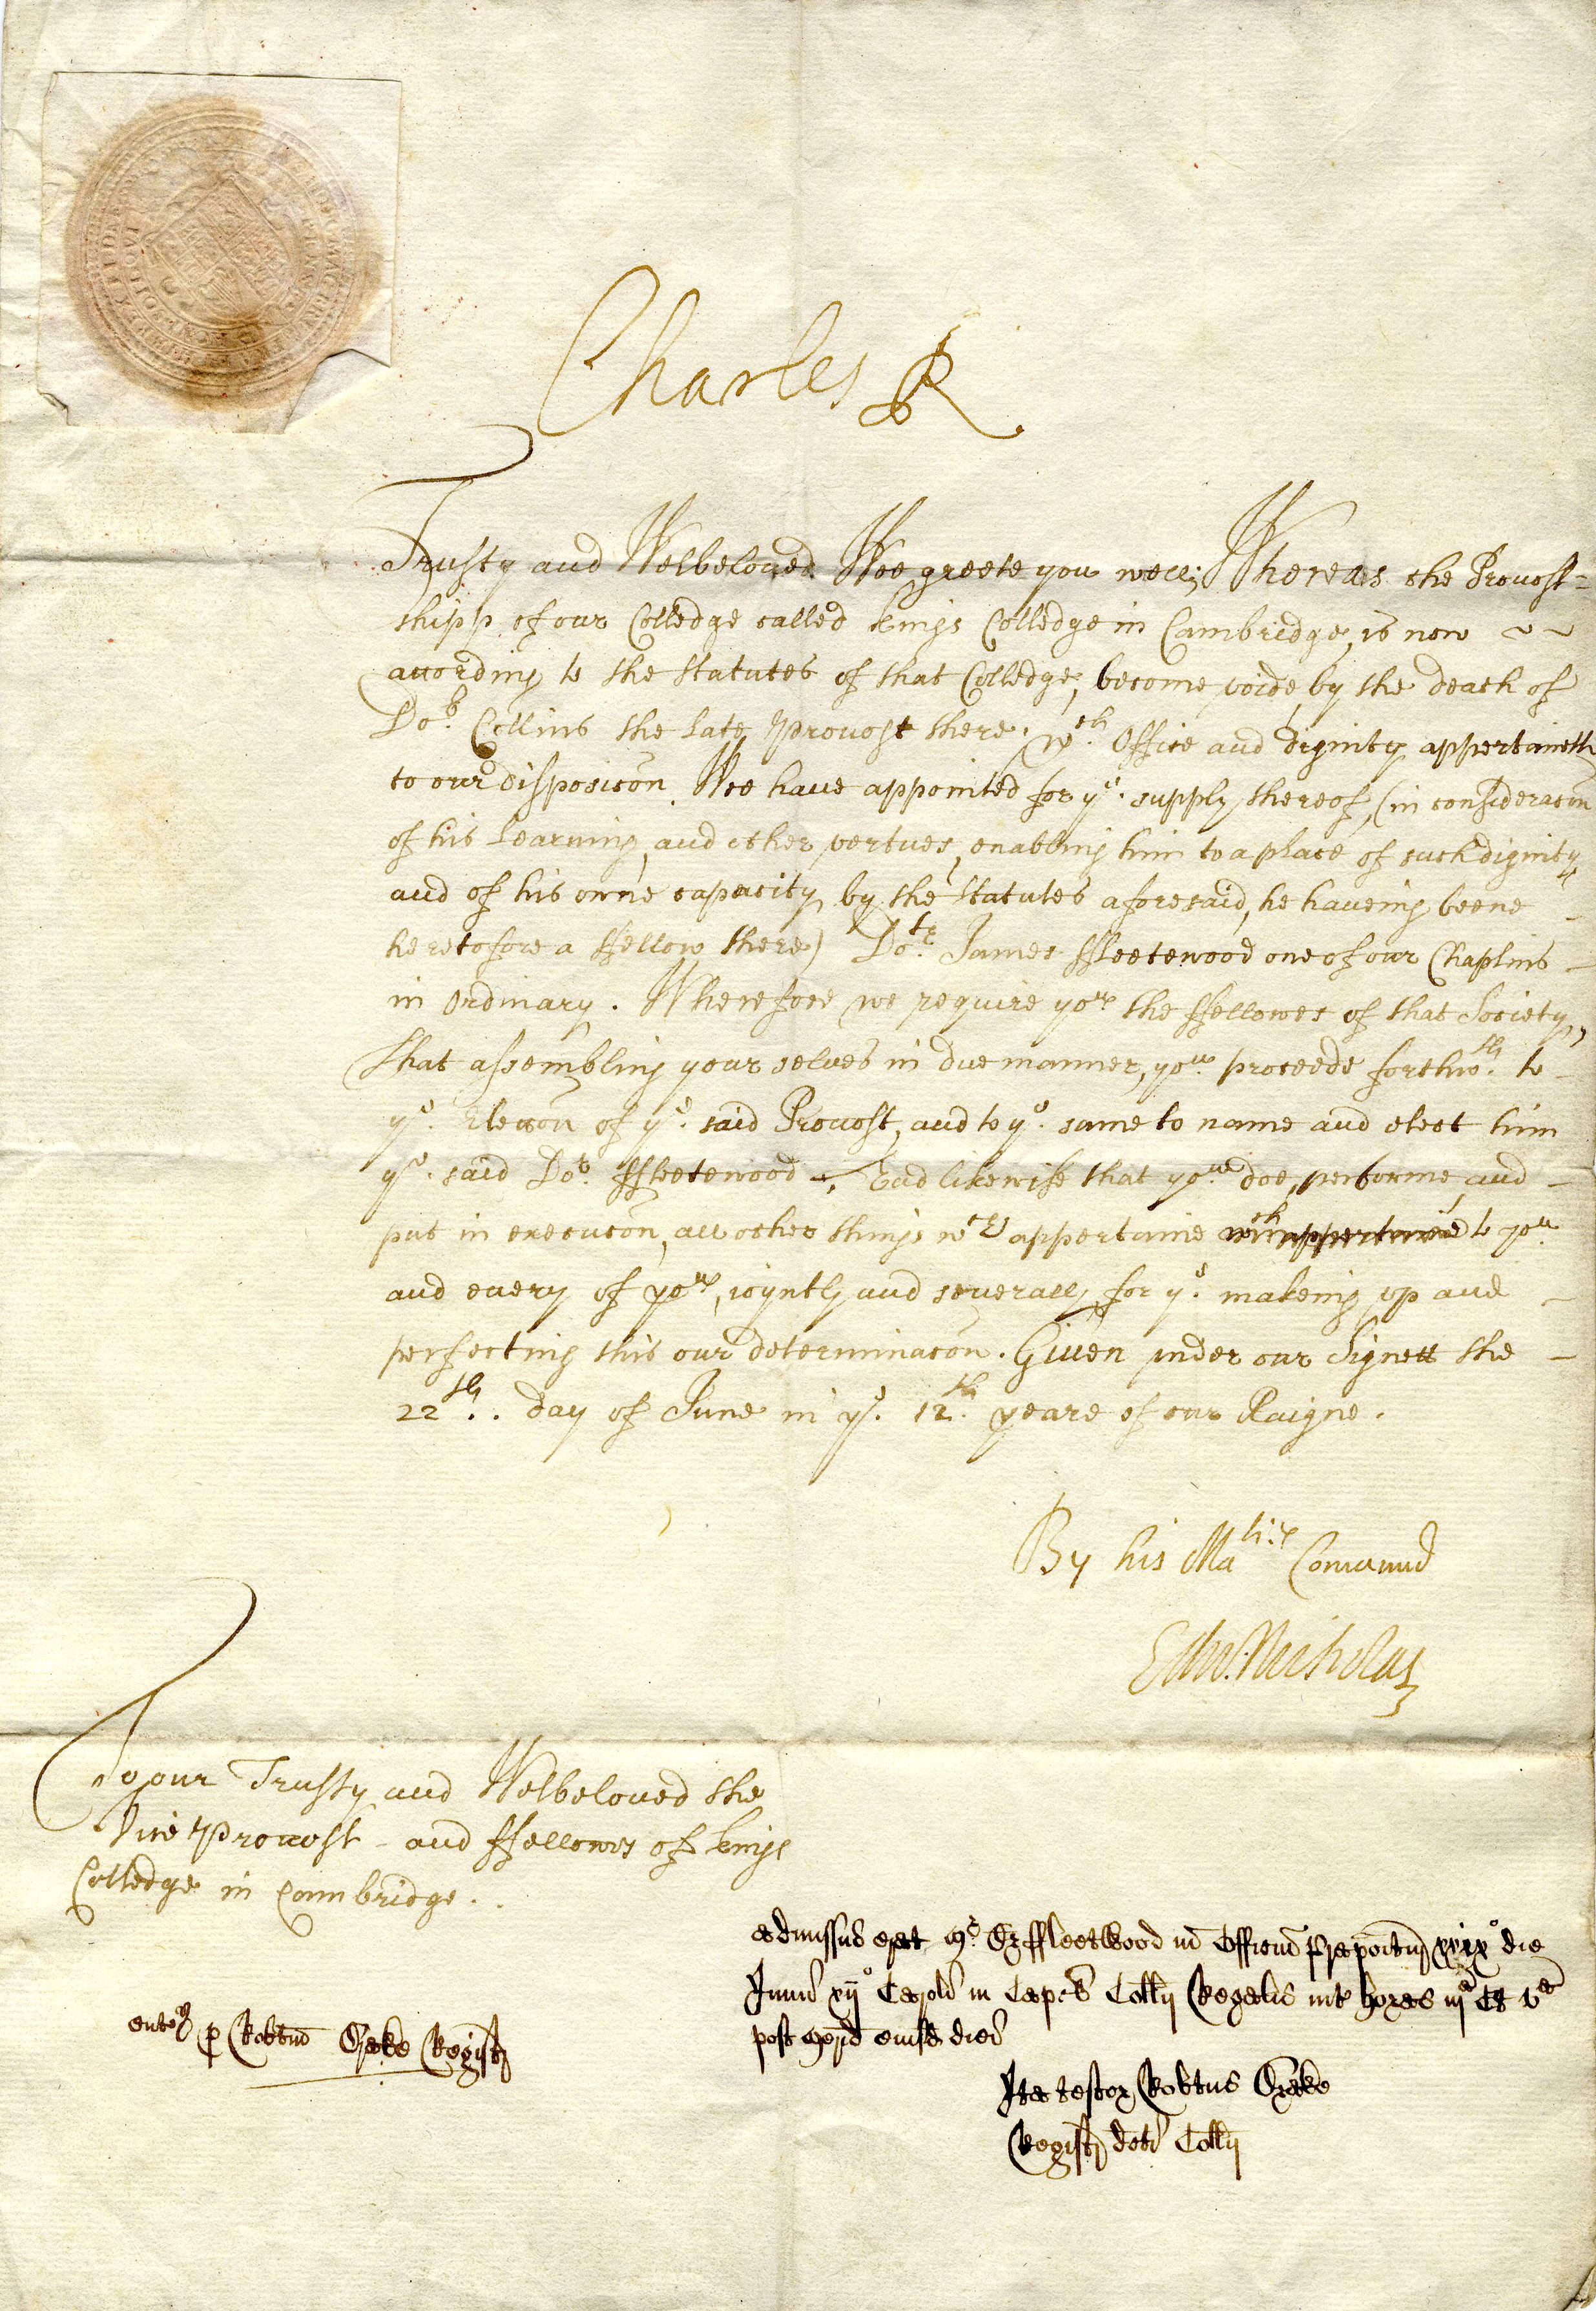 Letter signed by Charles II nominating James Fleetwood in 1660 (KCP/22)